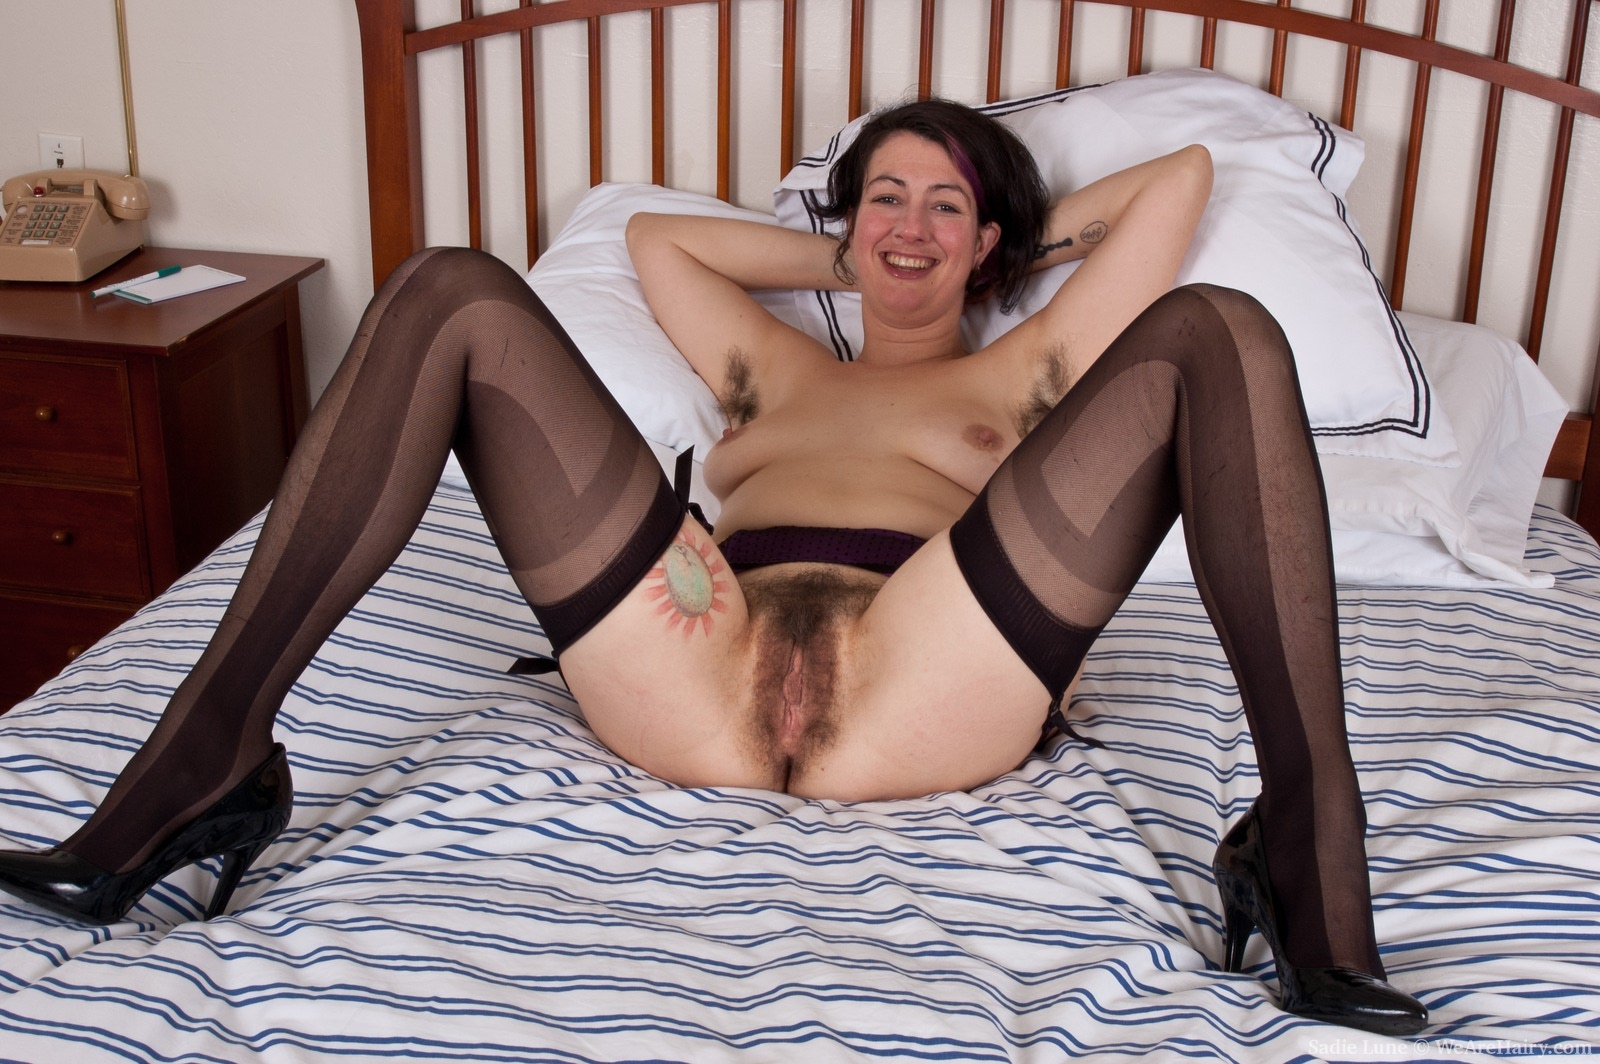 Like flirt and Huge tit amateur milf outgoing and honest